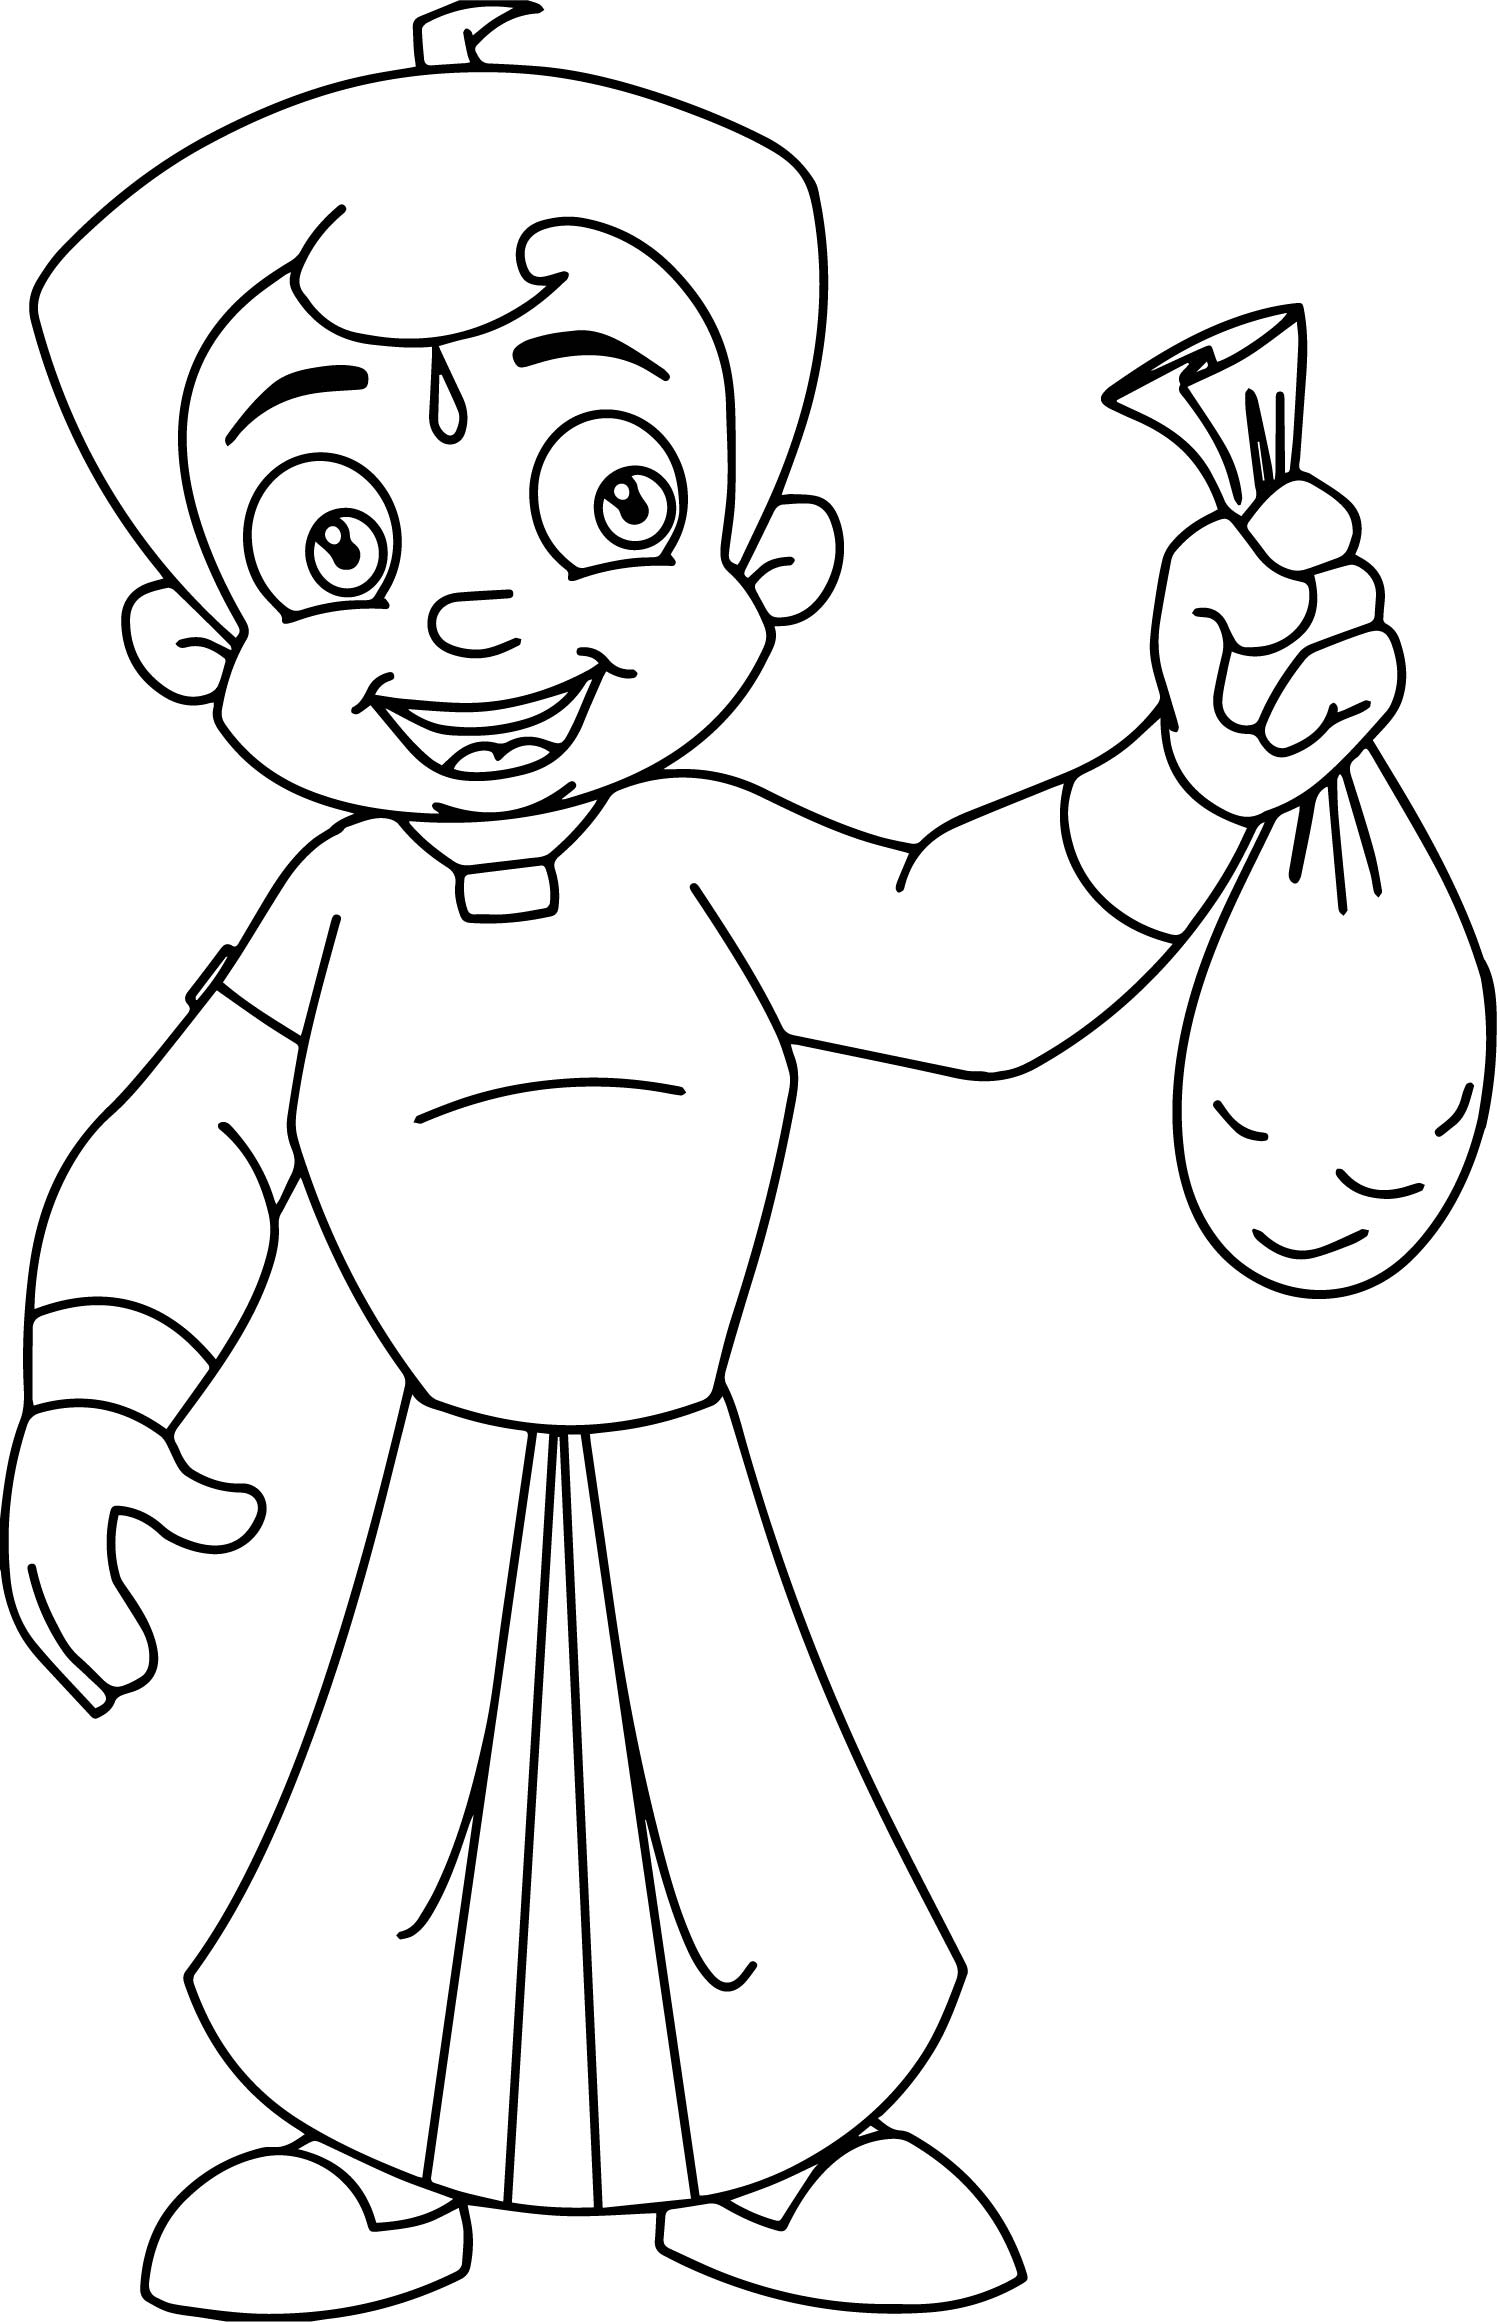 Coloring Pages Chota Bheem Coloring Pages chhota bheem gold coloring pages wecoloringpage pages